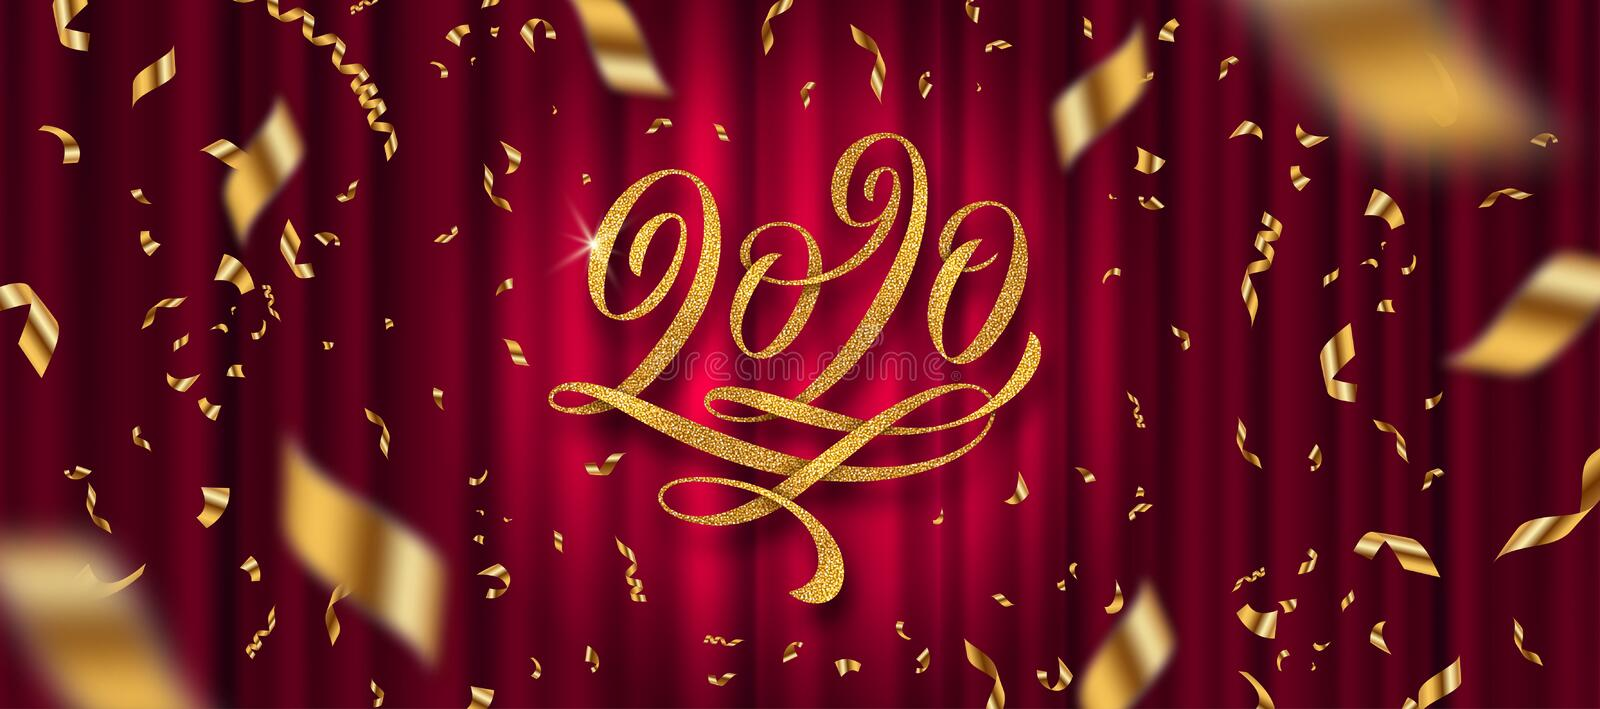 2020 New Year greeting design. Glitter gold flourishes calligraphic 2020 year logo and golden confetti on a red curtain background. Vector illustration. Can be stock illustration